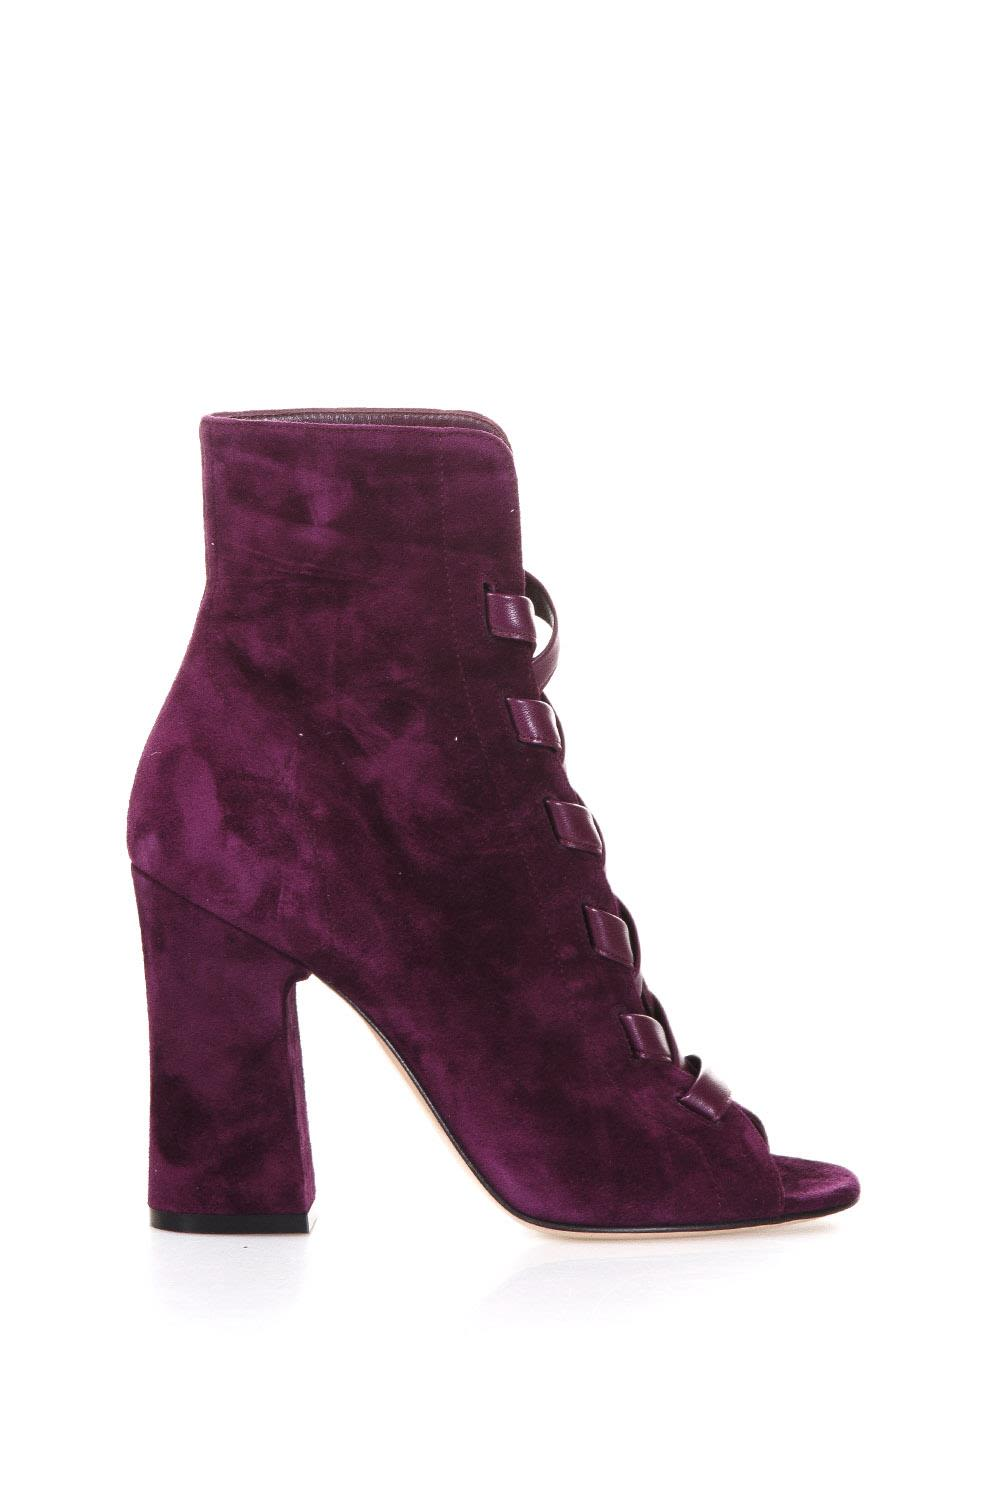 Gianvito Rossi Brooklin Suede Open Toe Boots